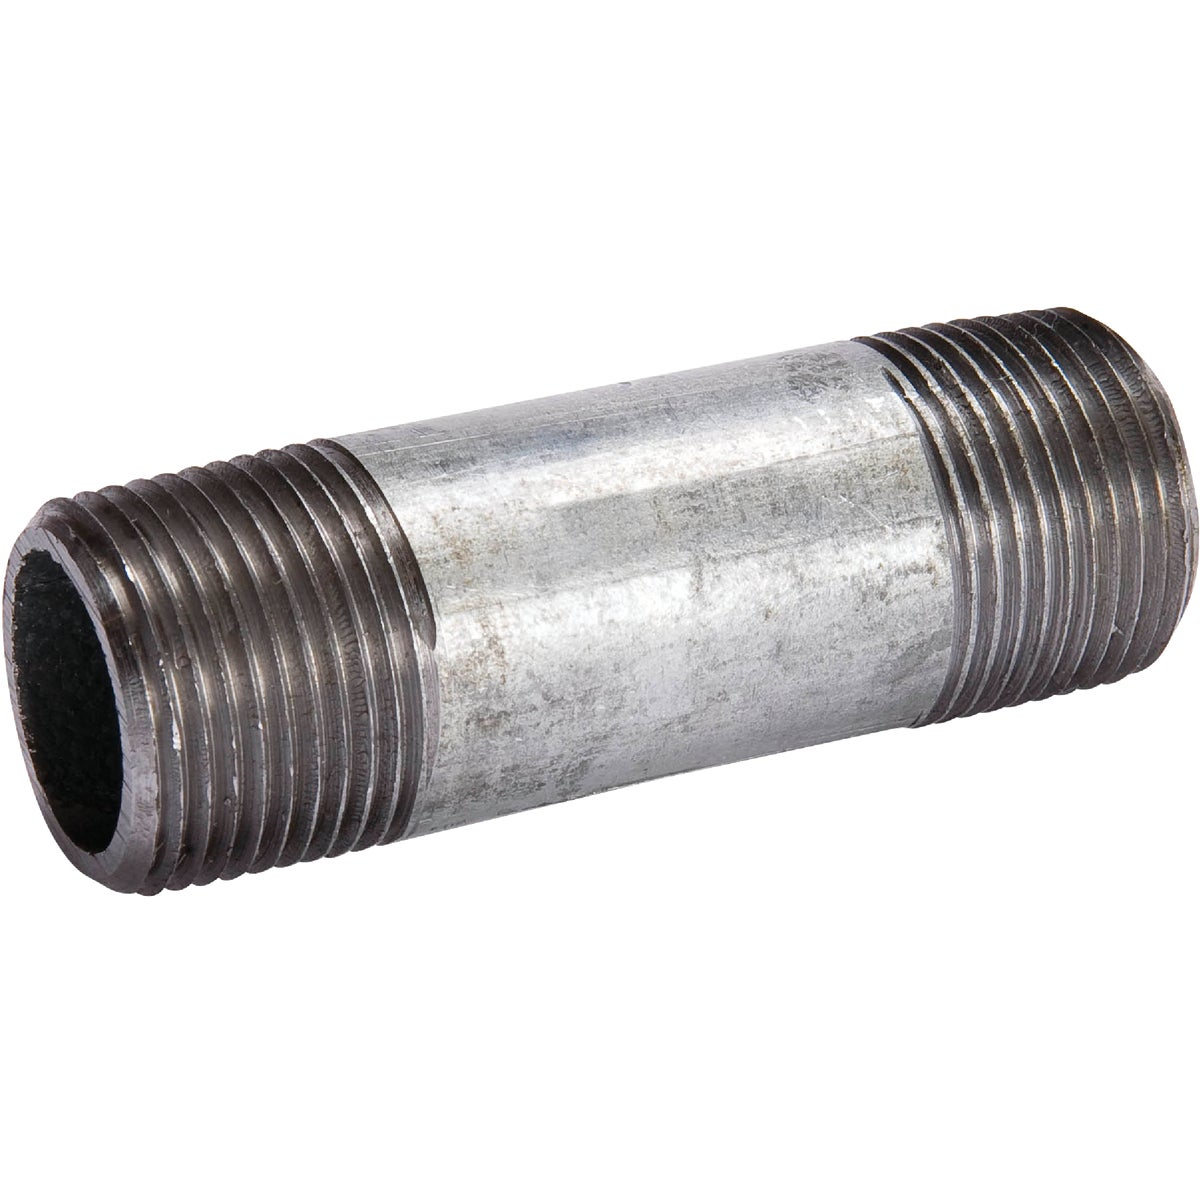 3/8X4-1/2 GALV NIPPLE - 10307 by Southland Pipe Nippl